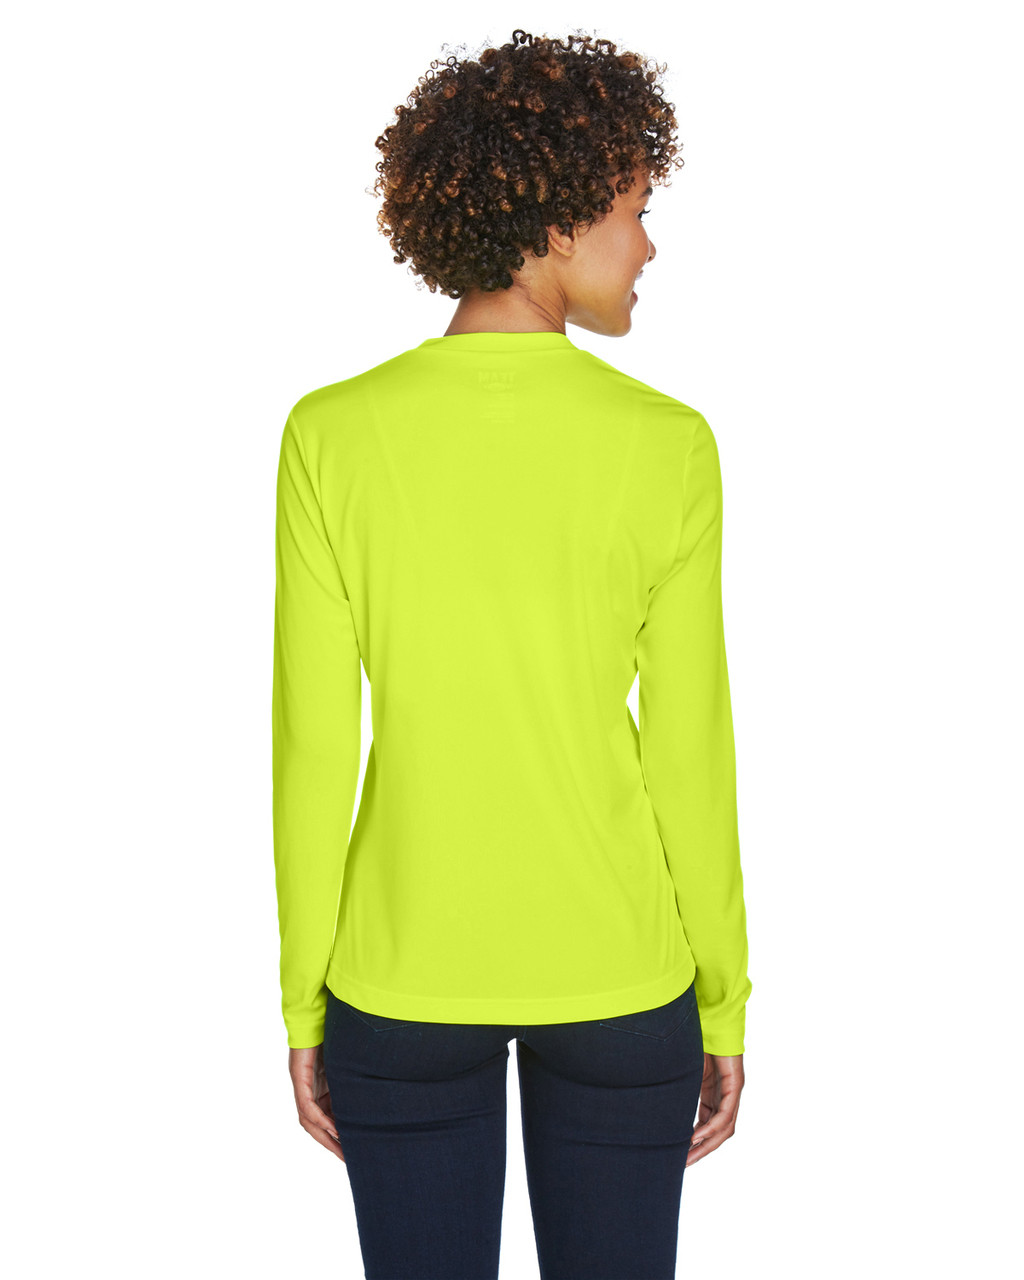 Safety Yellow - TT11WL Team 365 Ladies' Zone Performance Long-Sleeve T-Shirt